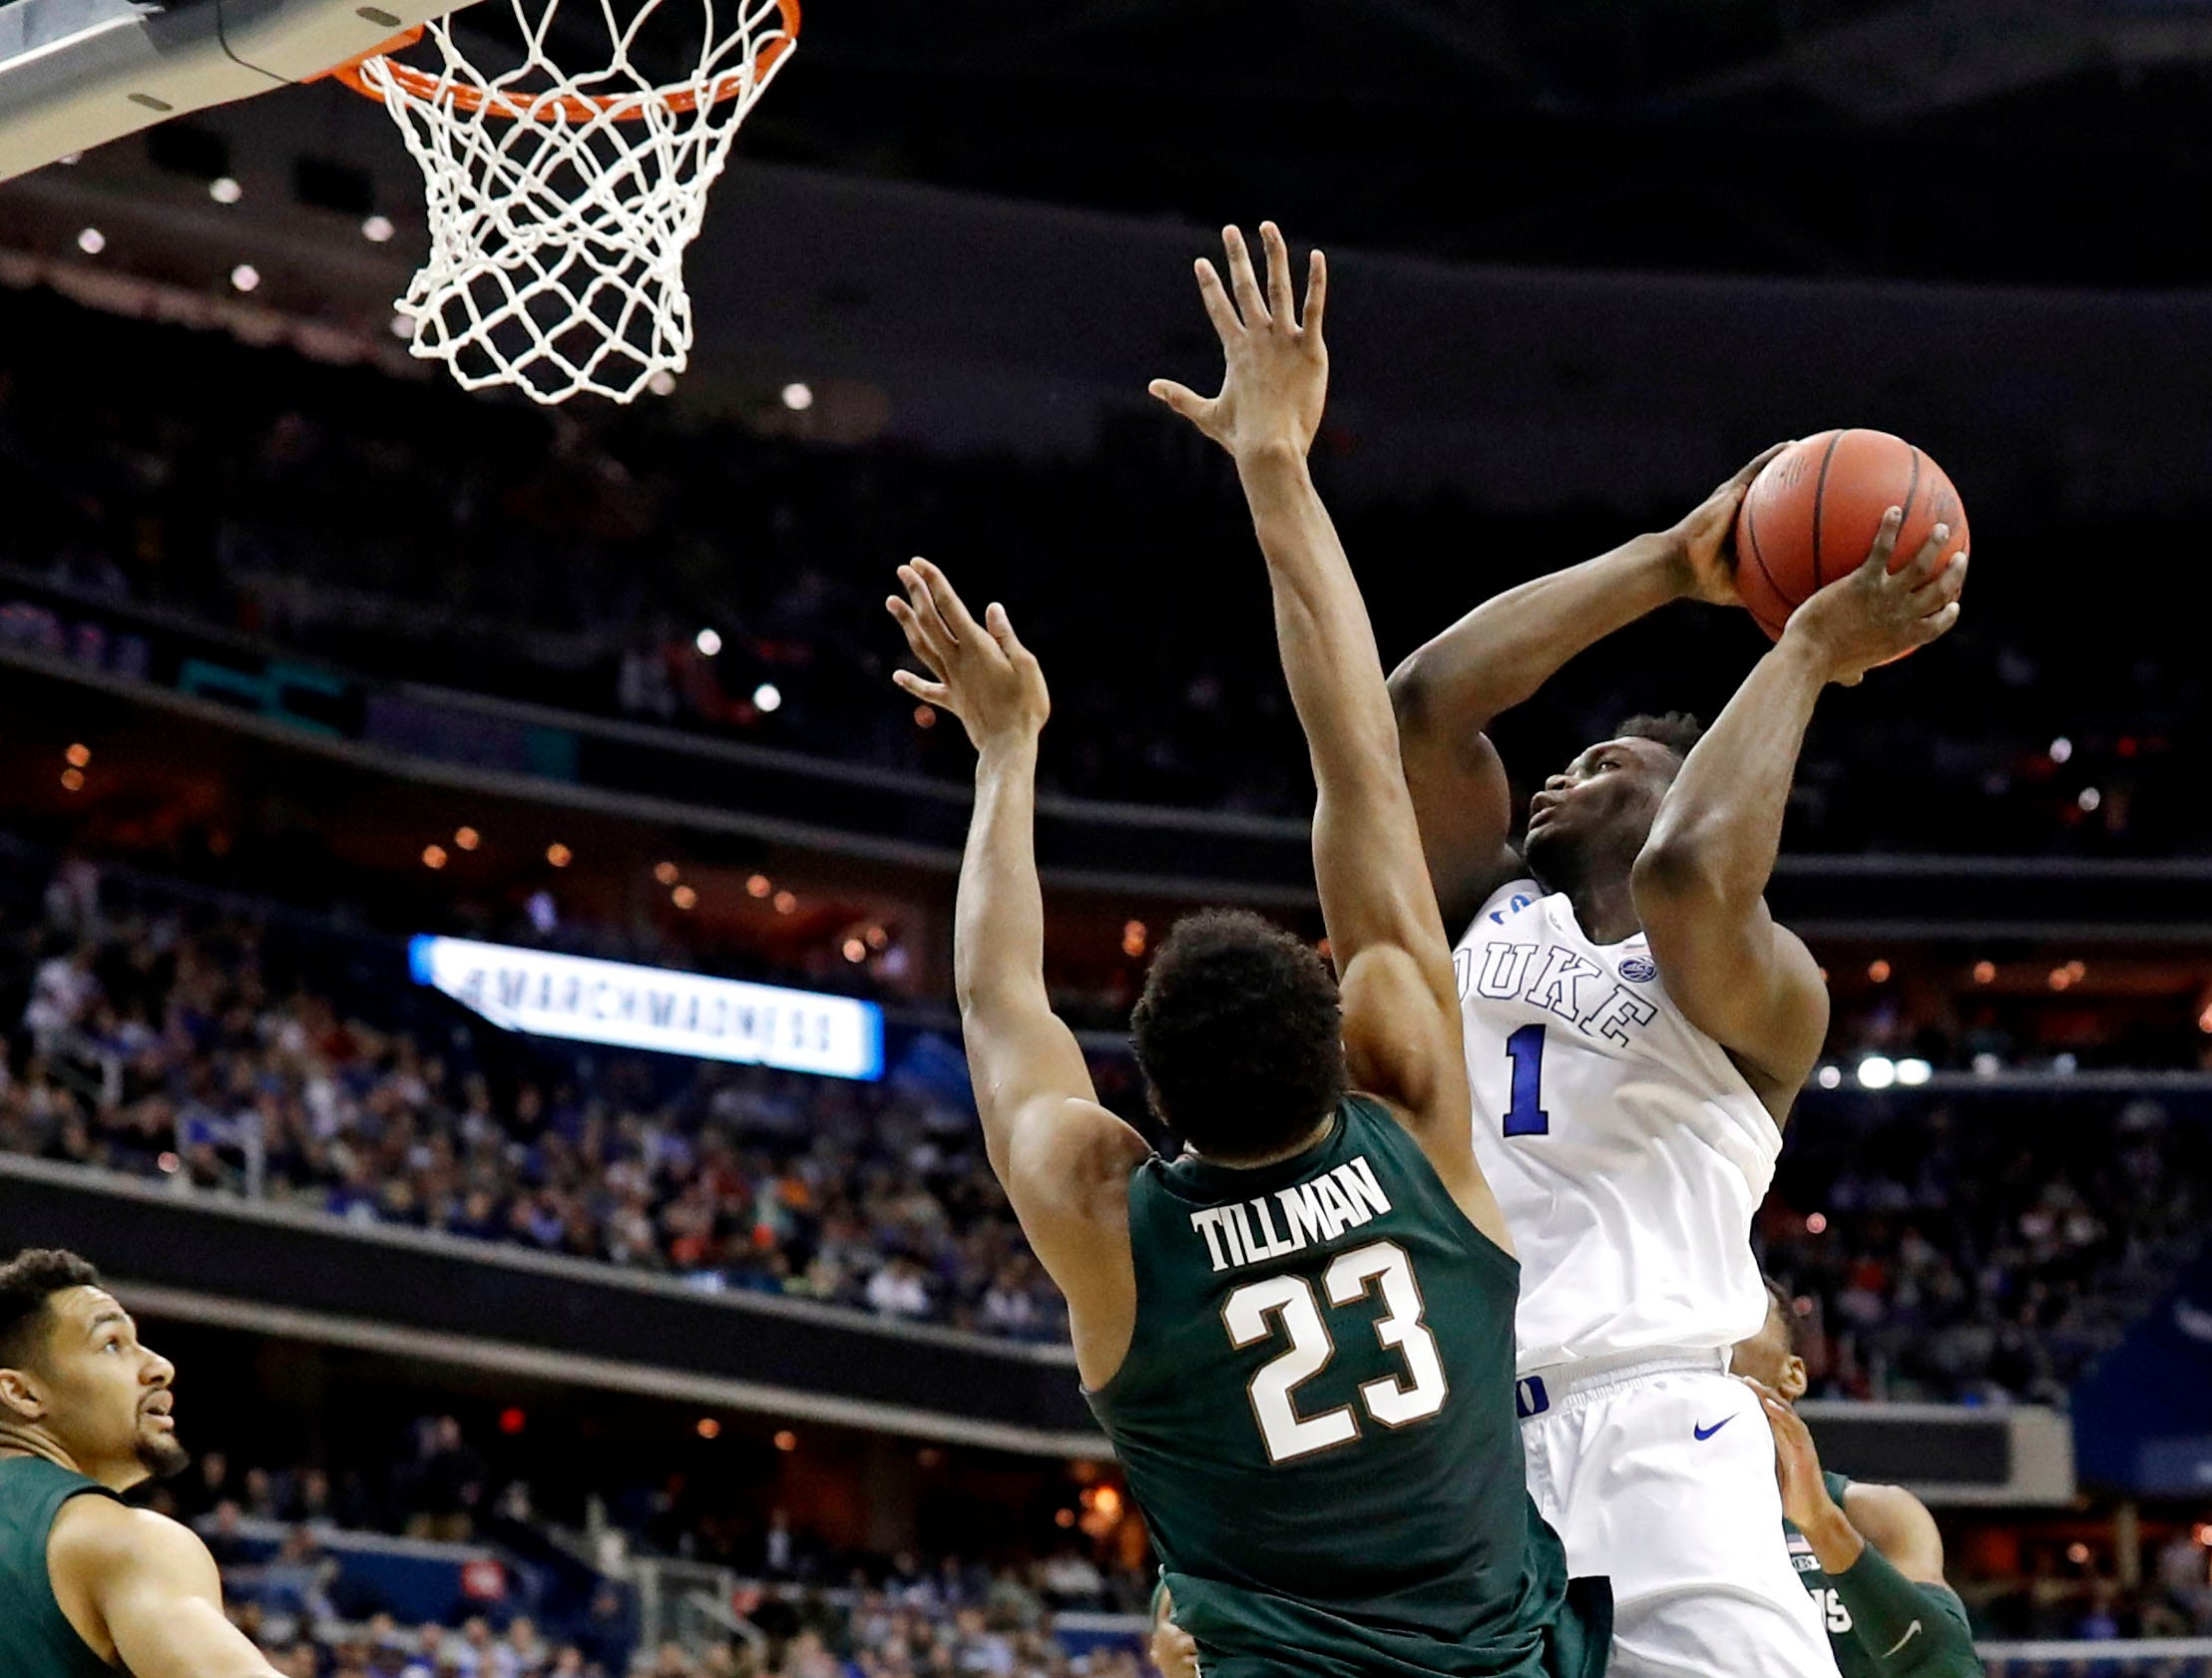 Duke Blue Devils forward Zion Williamson (1) shoots the ball against Michigan State Spartans forward Xavier Tillman (23) during the first half in the championship game of the east regional of the 2019 NCAA Tournament at Capital One Arena.